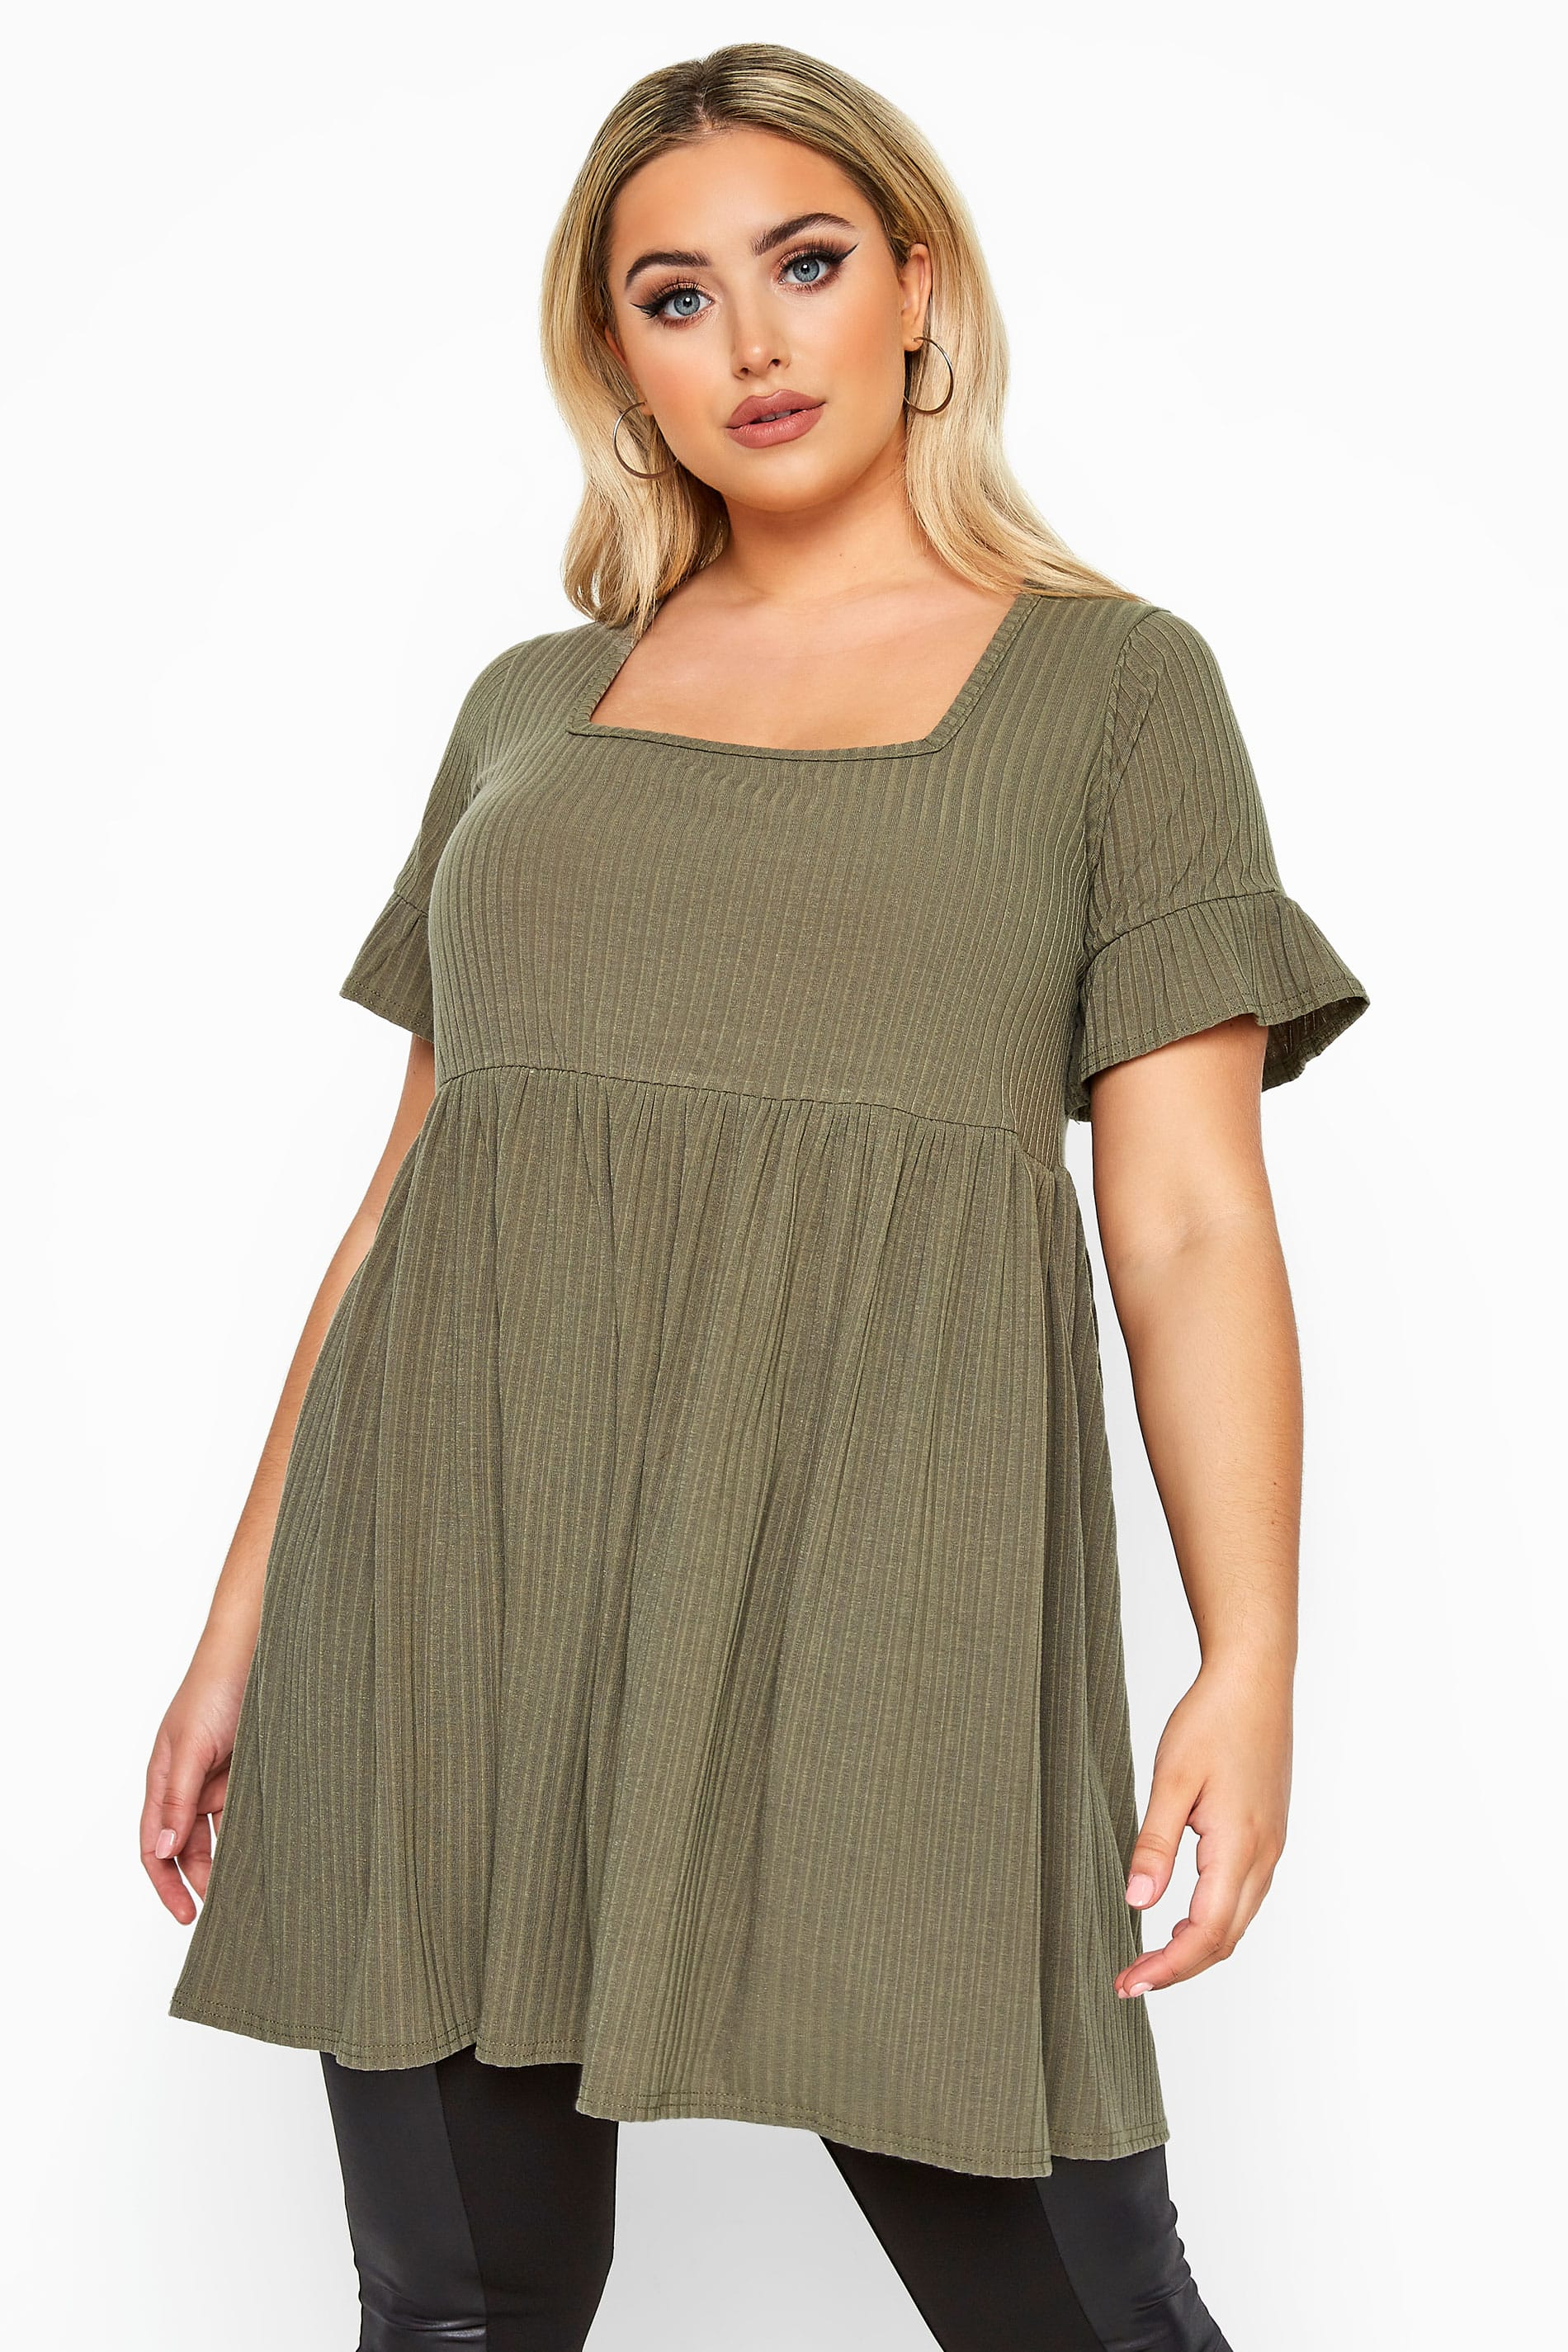 LIMITED COLLECTION Khaki Ribbed Square Neck Smock Top